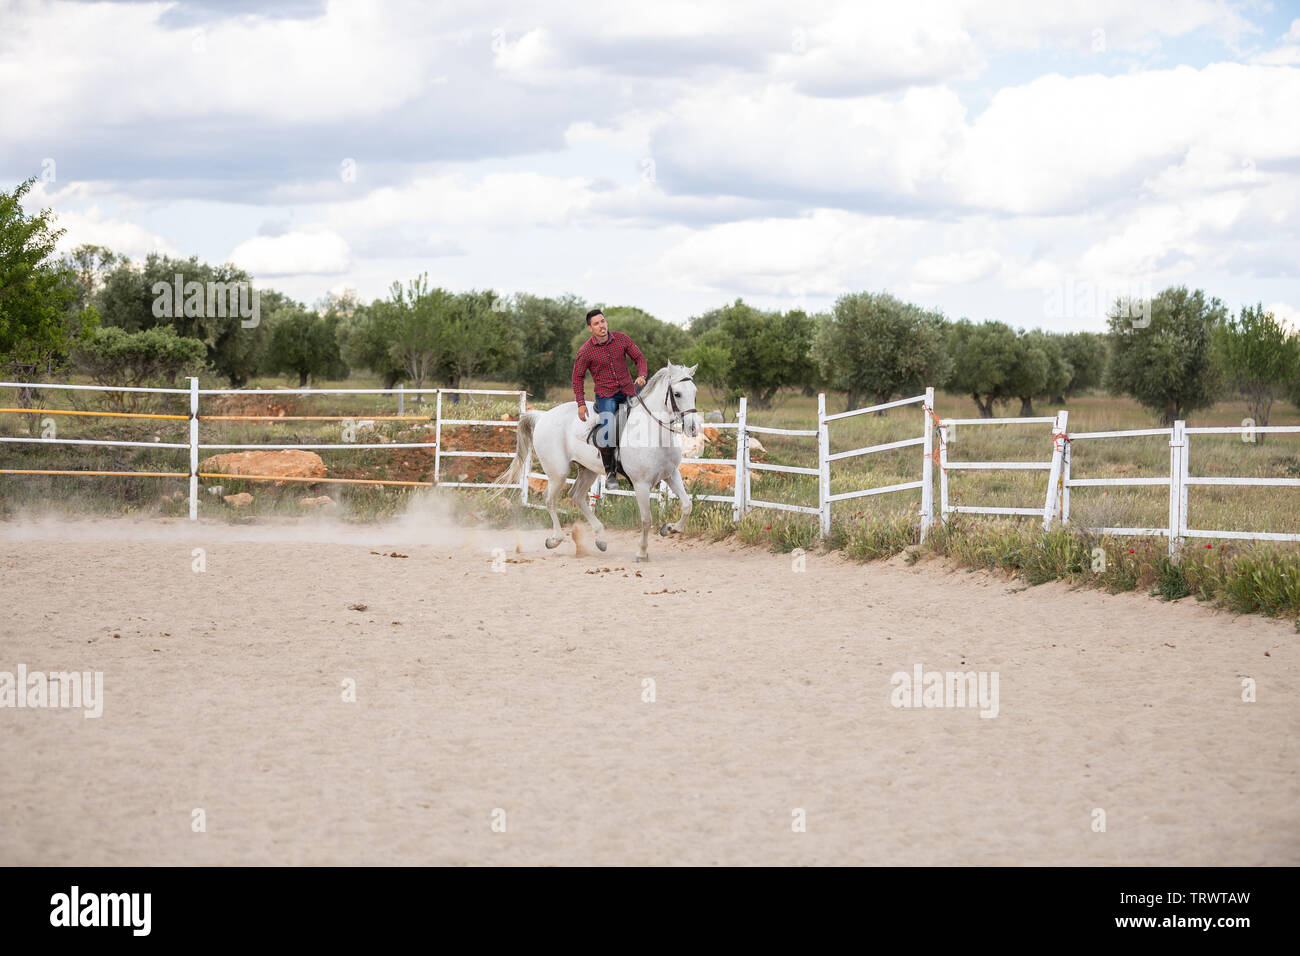 Young Guy In Casual Outfit Riding White Horse On Sandy Ground In Enclosure On Ranch Stock Photo Alamy